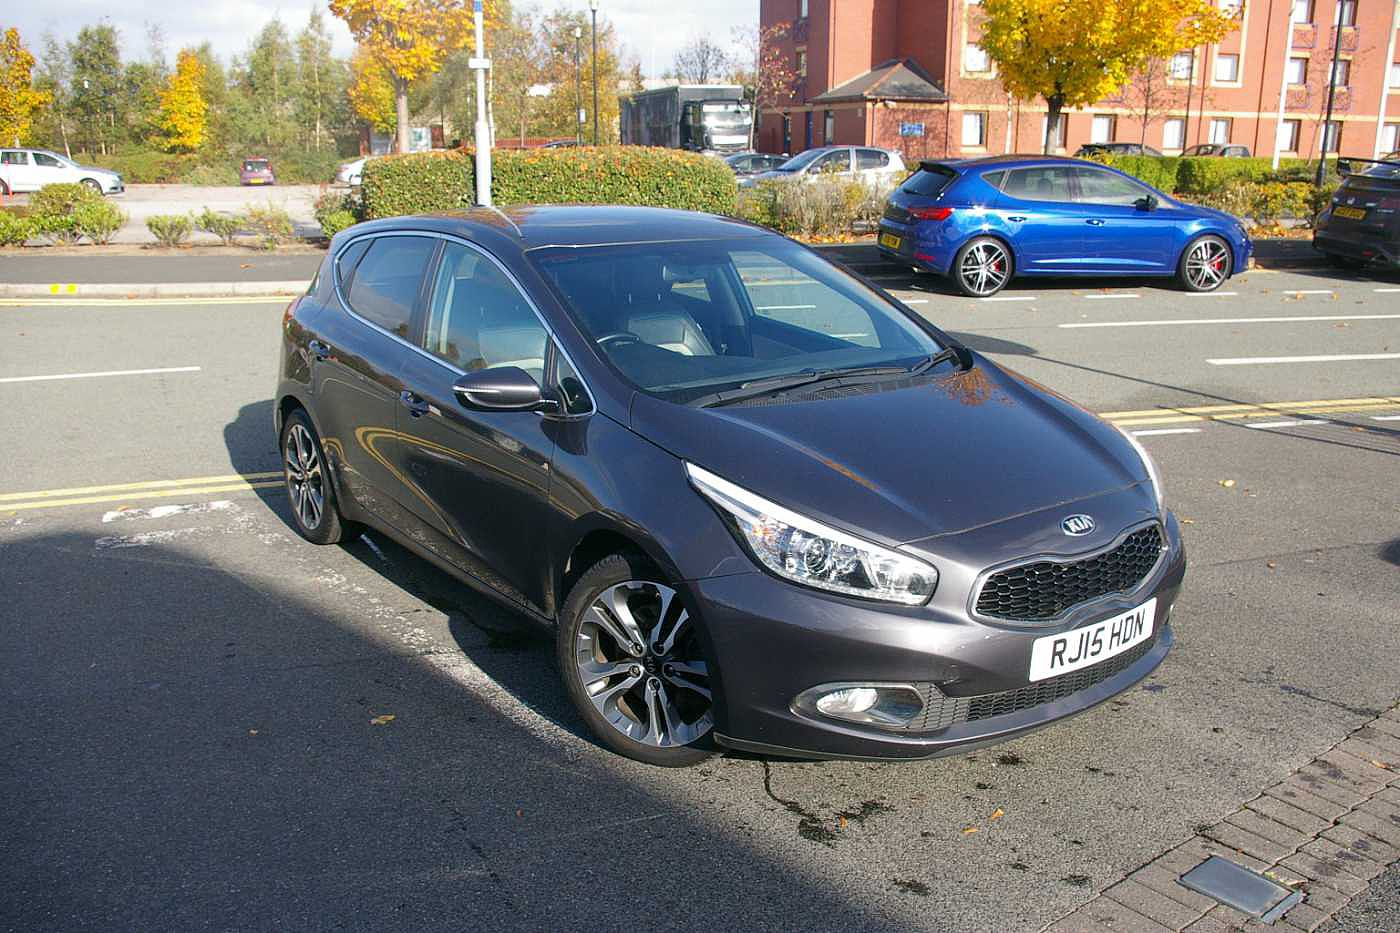 2015 Silver Kia Cee'd Hatchback 5-Door 1.6 CRDi, Diesel, Manual